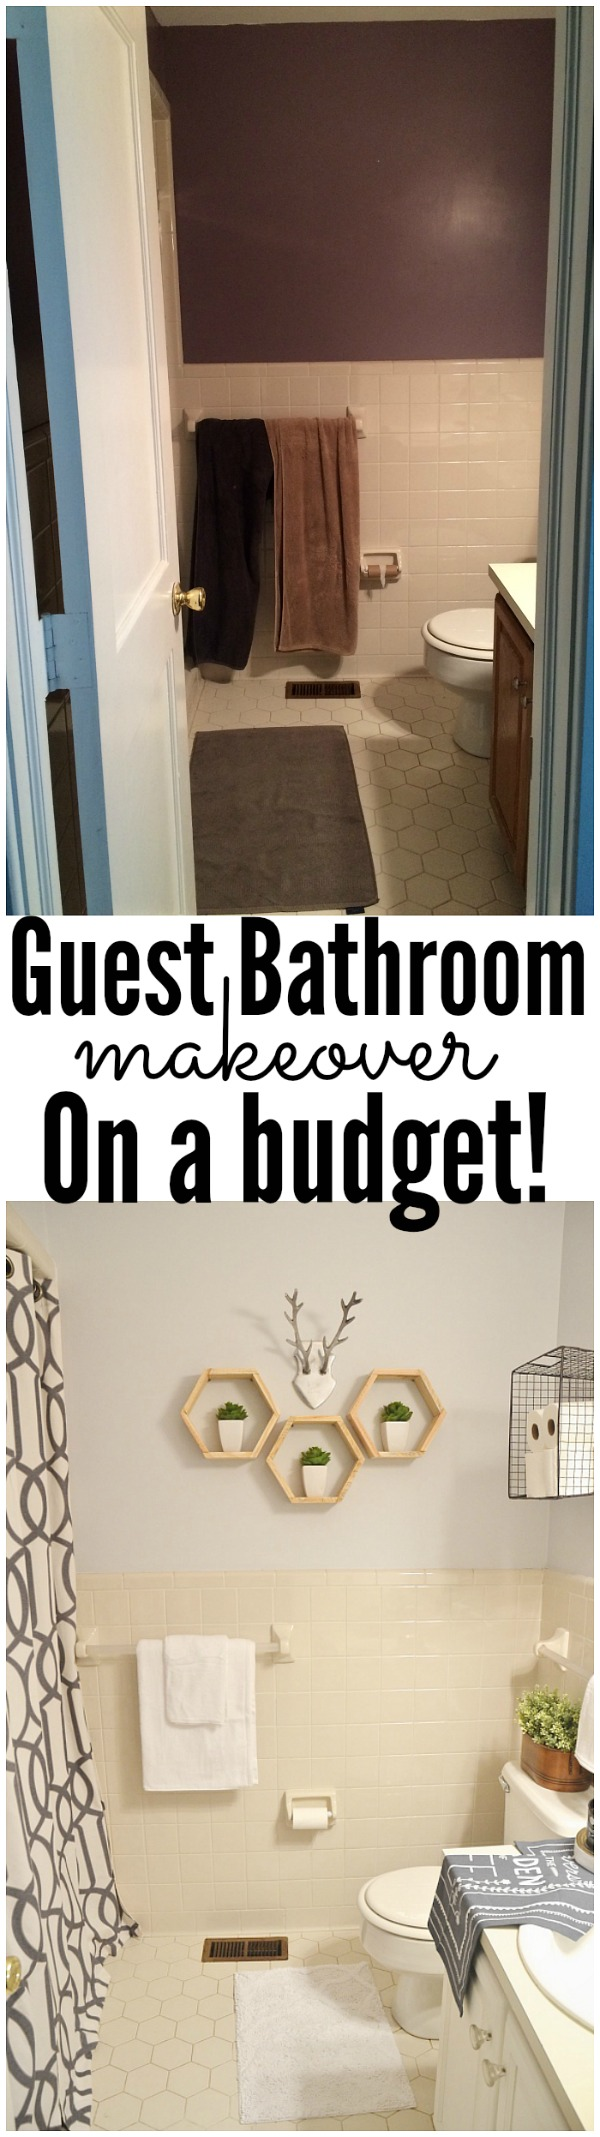 Bathroom makeover - on a SERIOUS budget! A must pin for anyone living with rooms that they don't love.